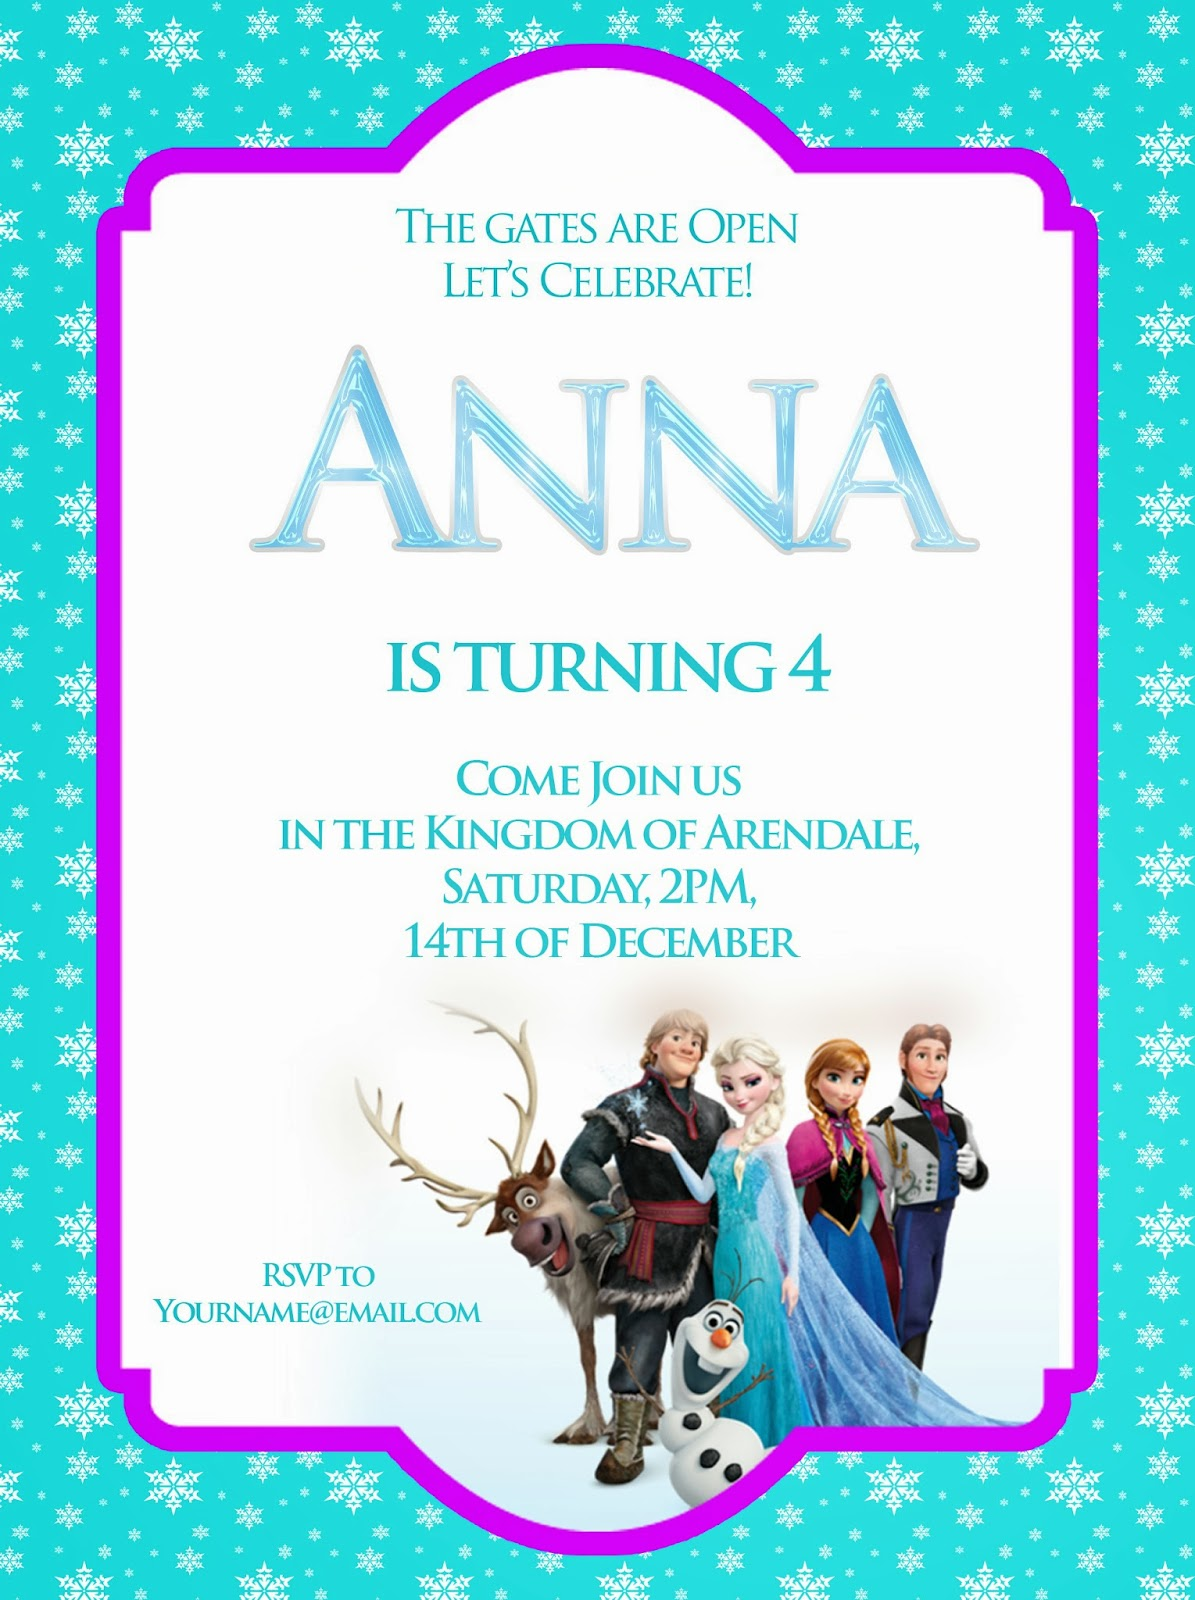 Frozen theme, here is a simple invitation that I have created which